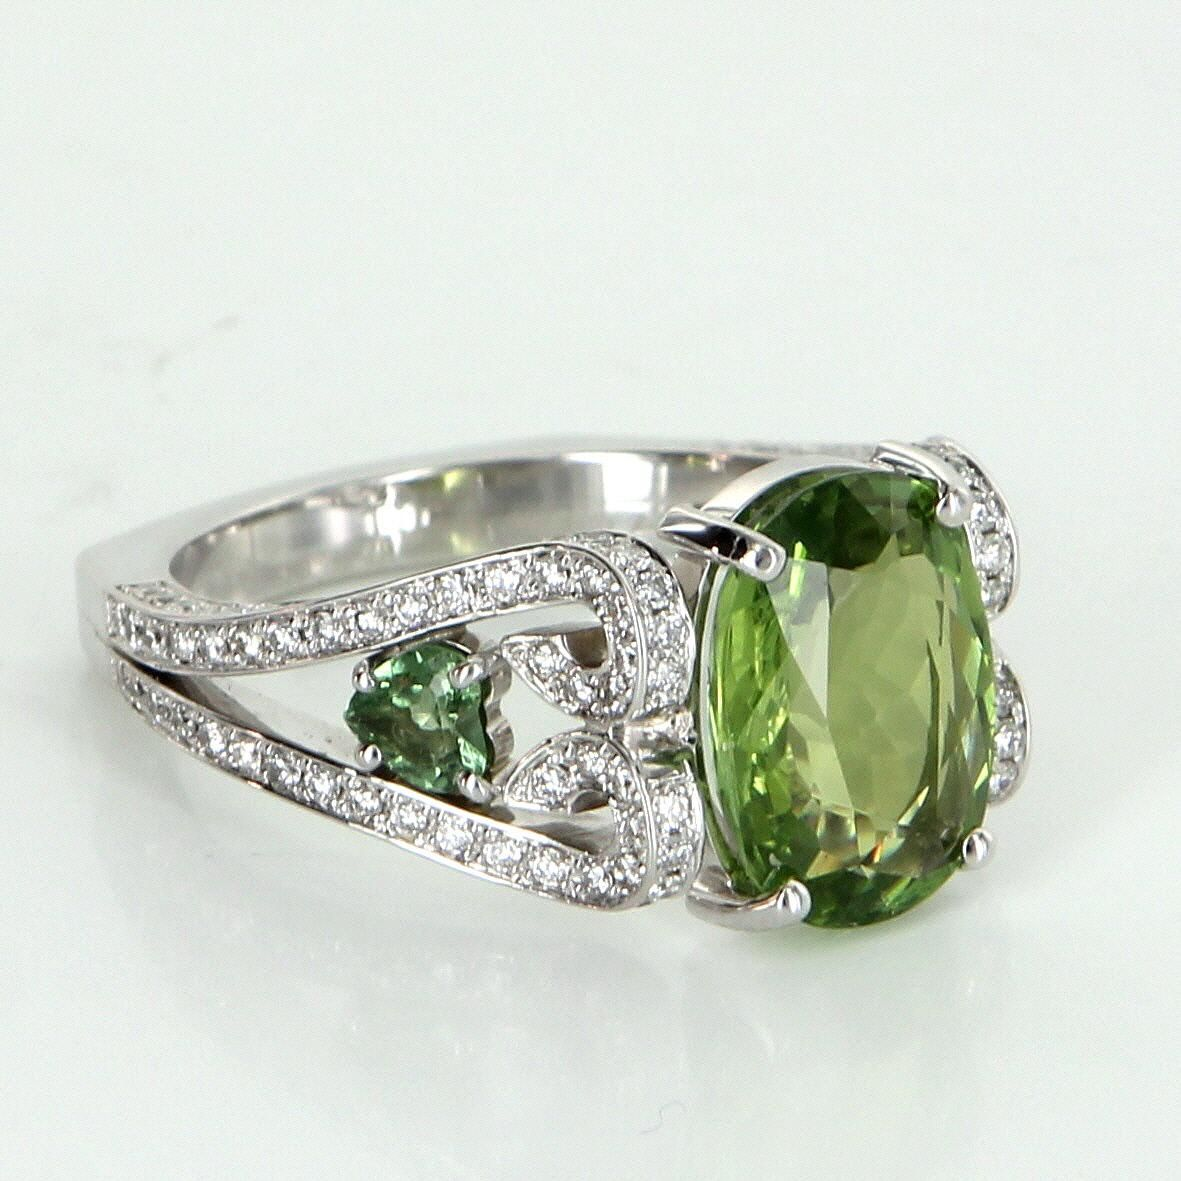 Peridot Diamond Cocktail Ring Vintage 18 Karat White Gold Estate